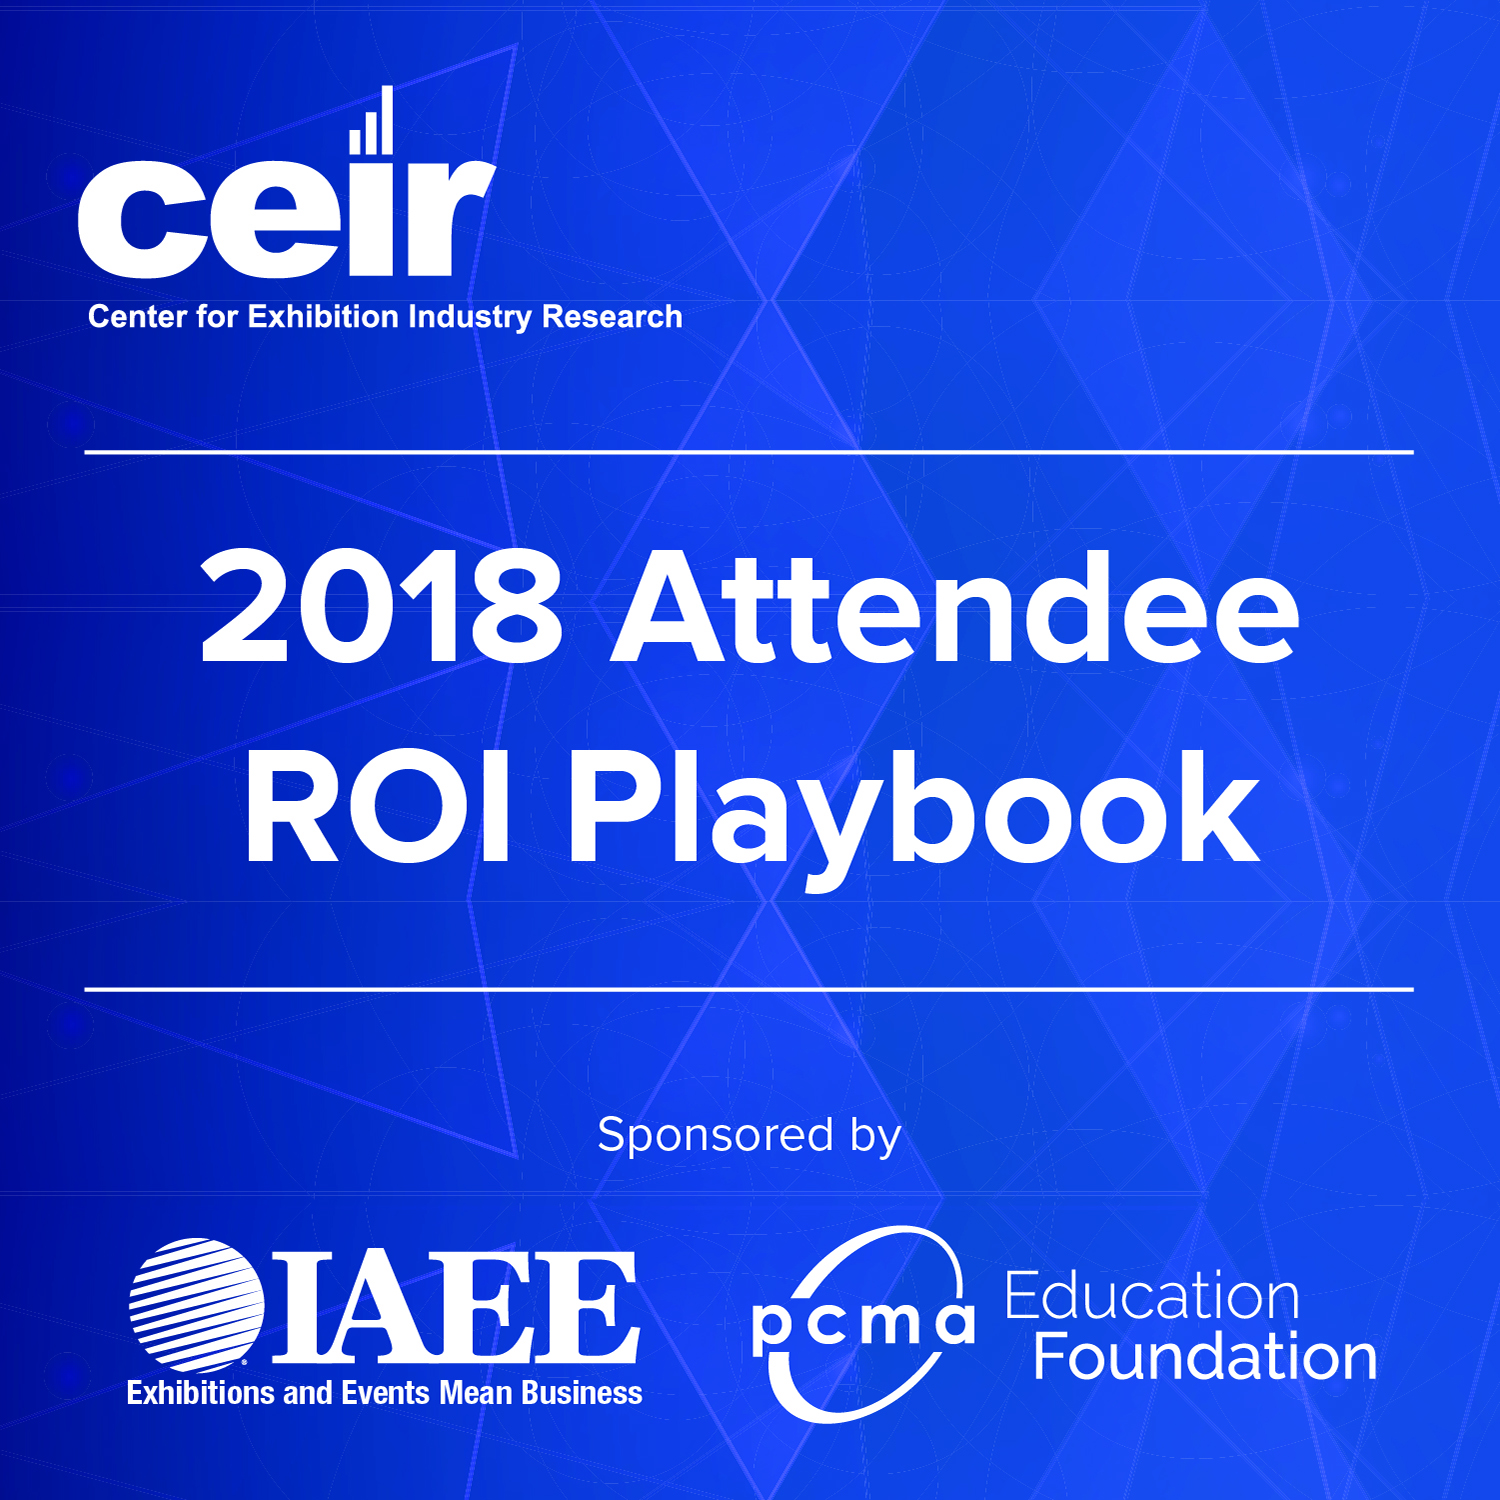 2018 Attendee ROI Playbook: Part 6